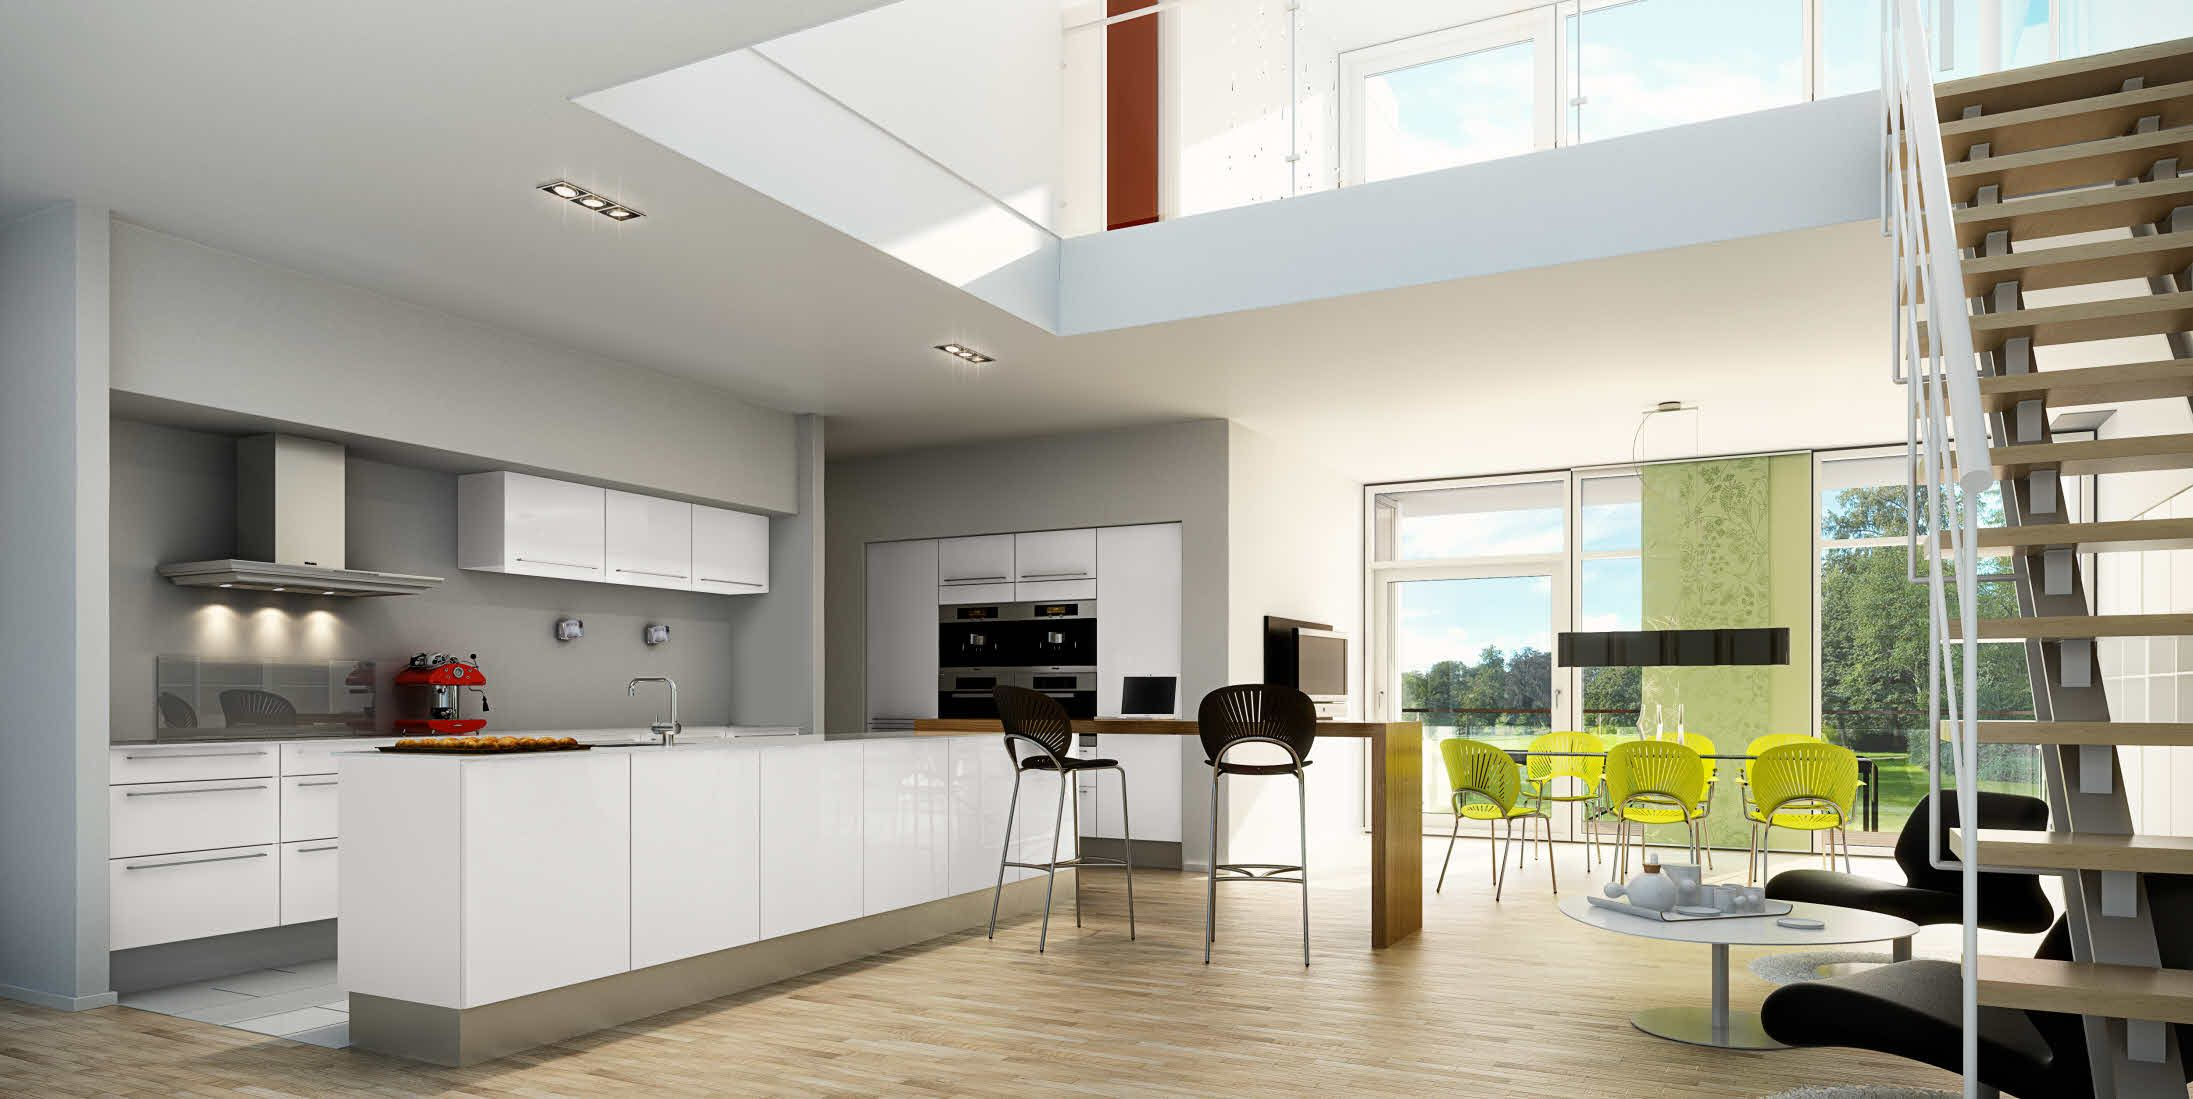 Cuisine Blanche Mur Taupe. Stunning Cuisine Blanche Mur Taupe With ...